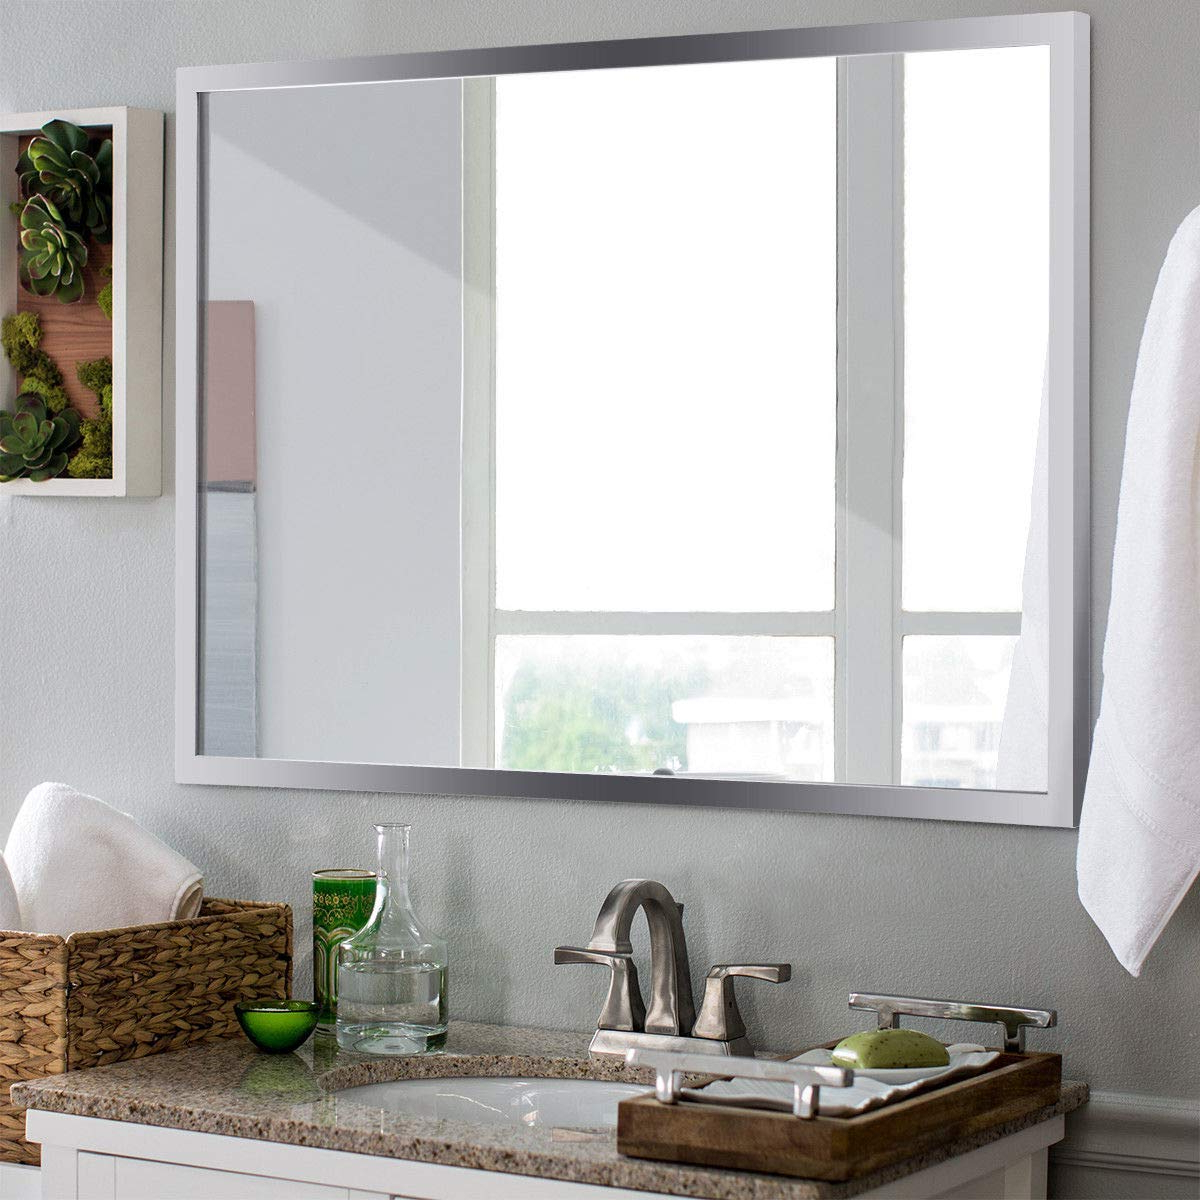 Stainless Steel Wall Mirrors In Well Known Tangkula Wall Mirror Rectangular, Bathroom Simple Modern Stainless Steel Frame Mirror, Aluminum Backed Floating Glass Vanity Bedroom Hangs Horizontal (View 6 of 20)